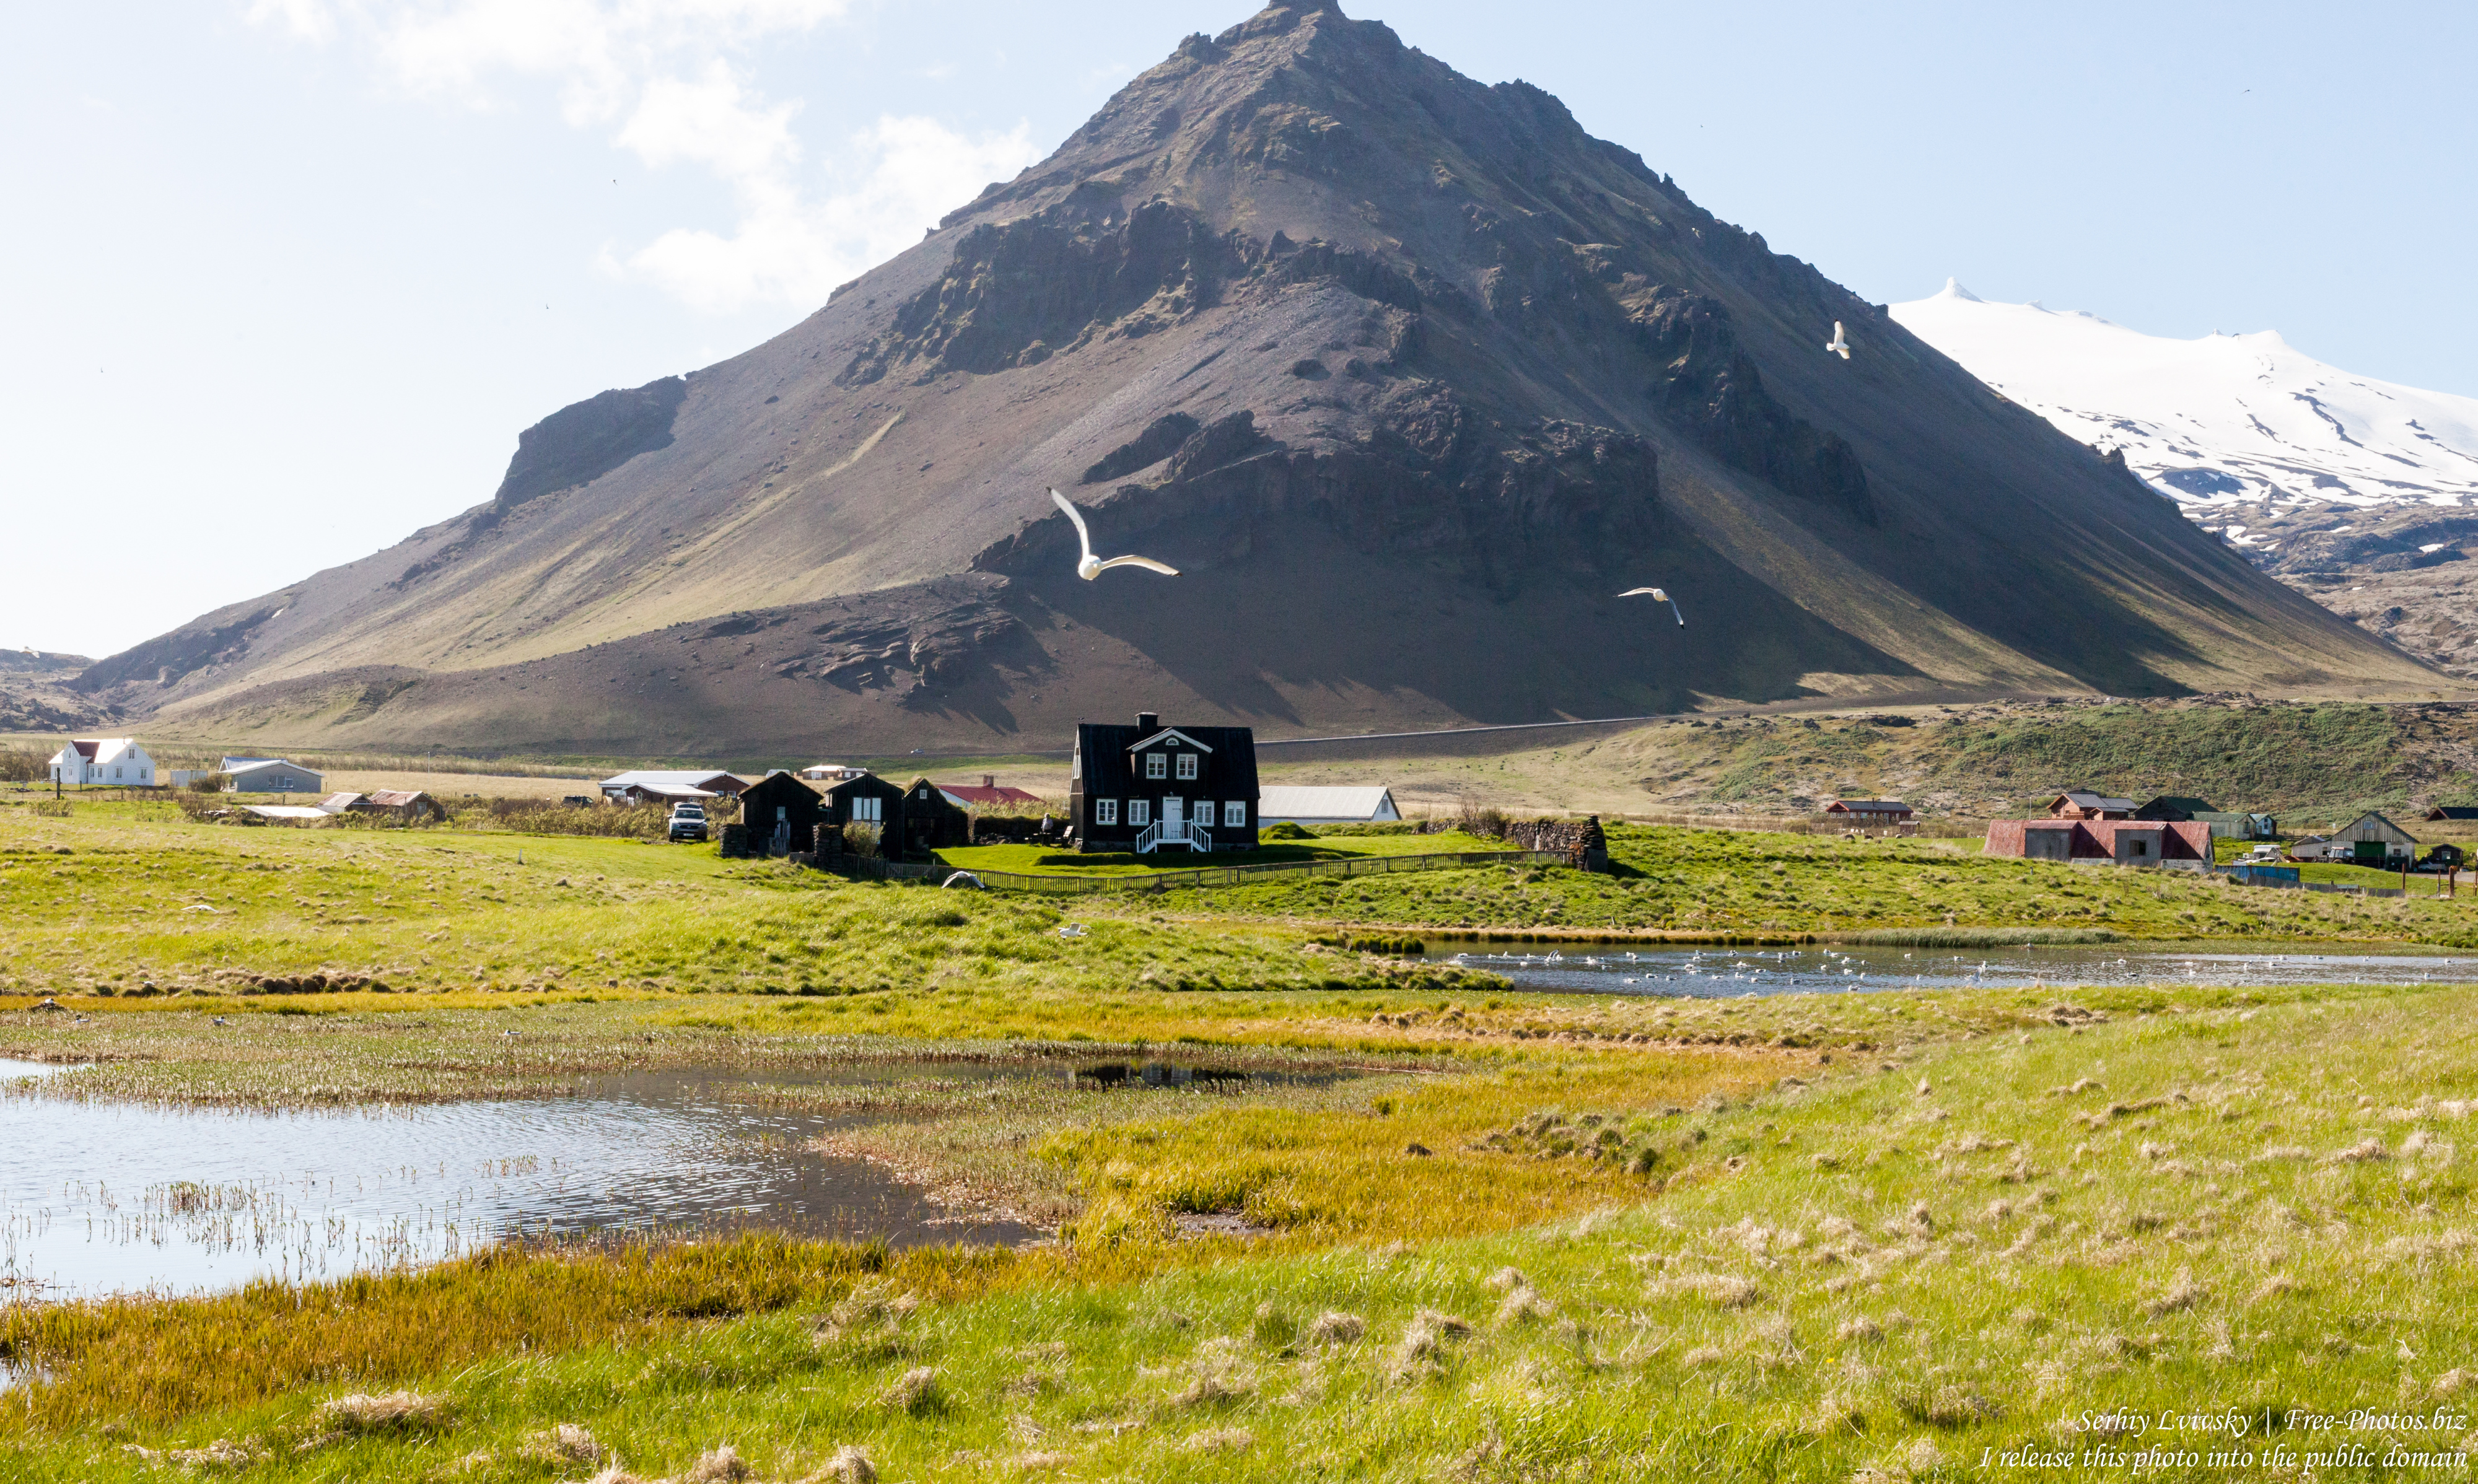 iceland_photographed_in_may_2019_by_serhiy_lvivsky_64